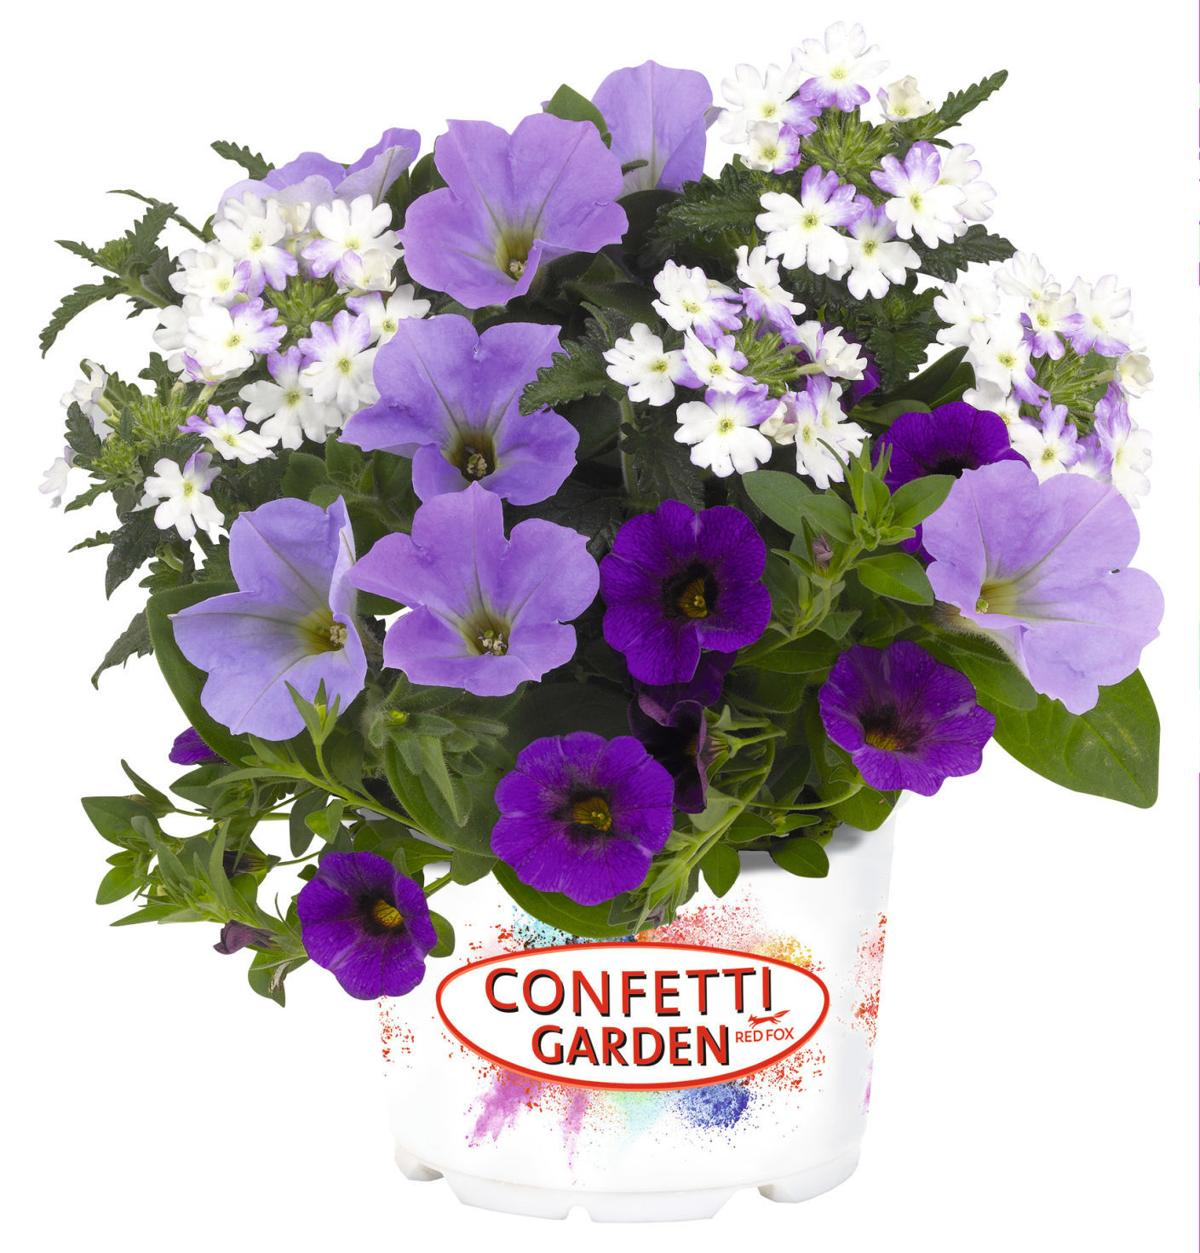 confetti garden shocking blue